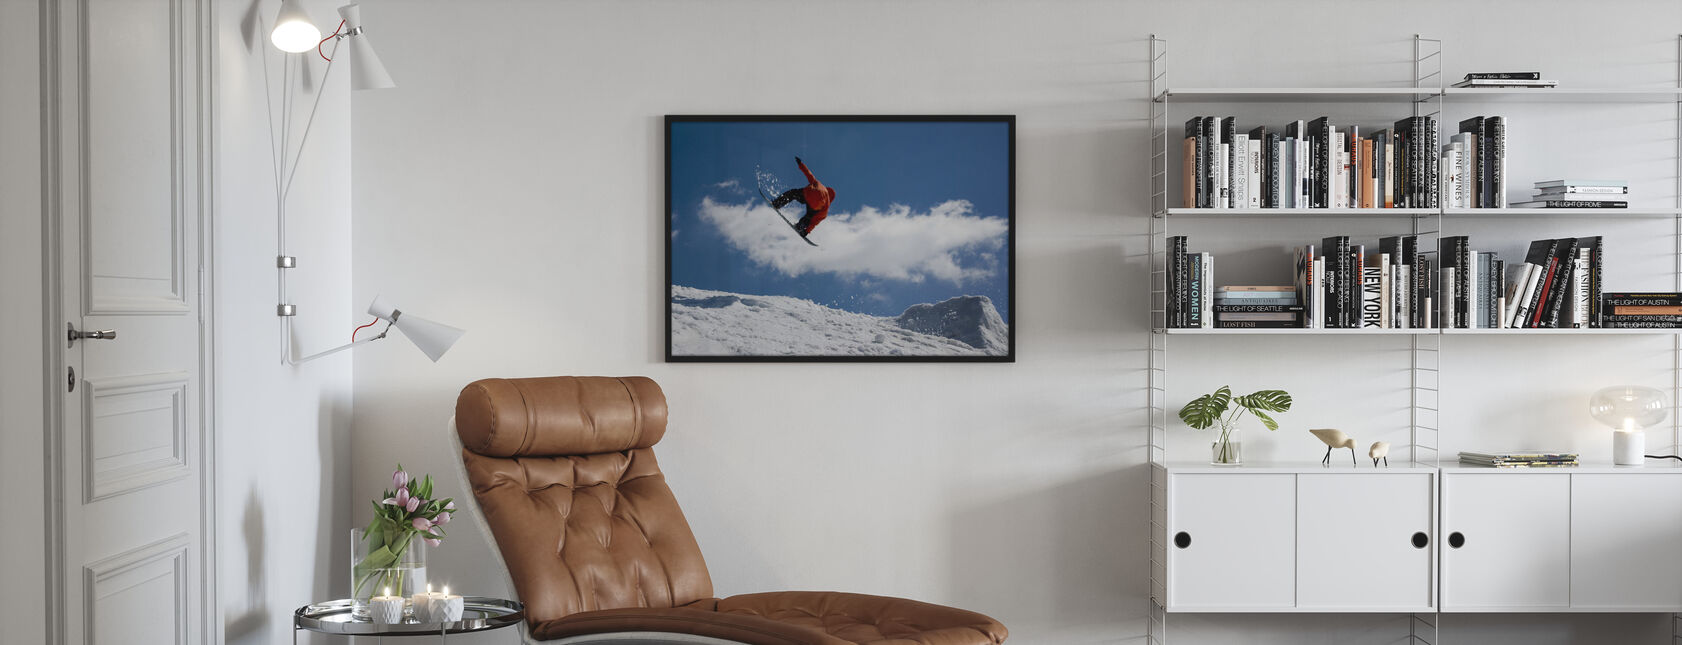 Snowboard Jump from Ramp - Poster - Living Room